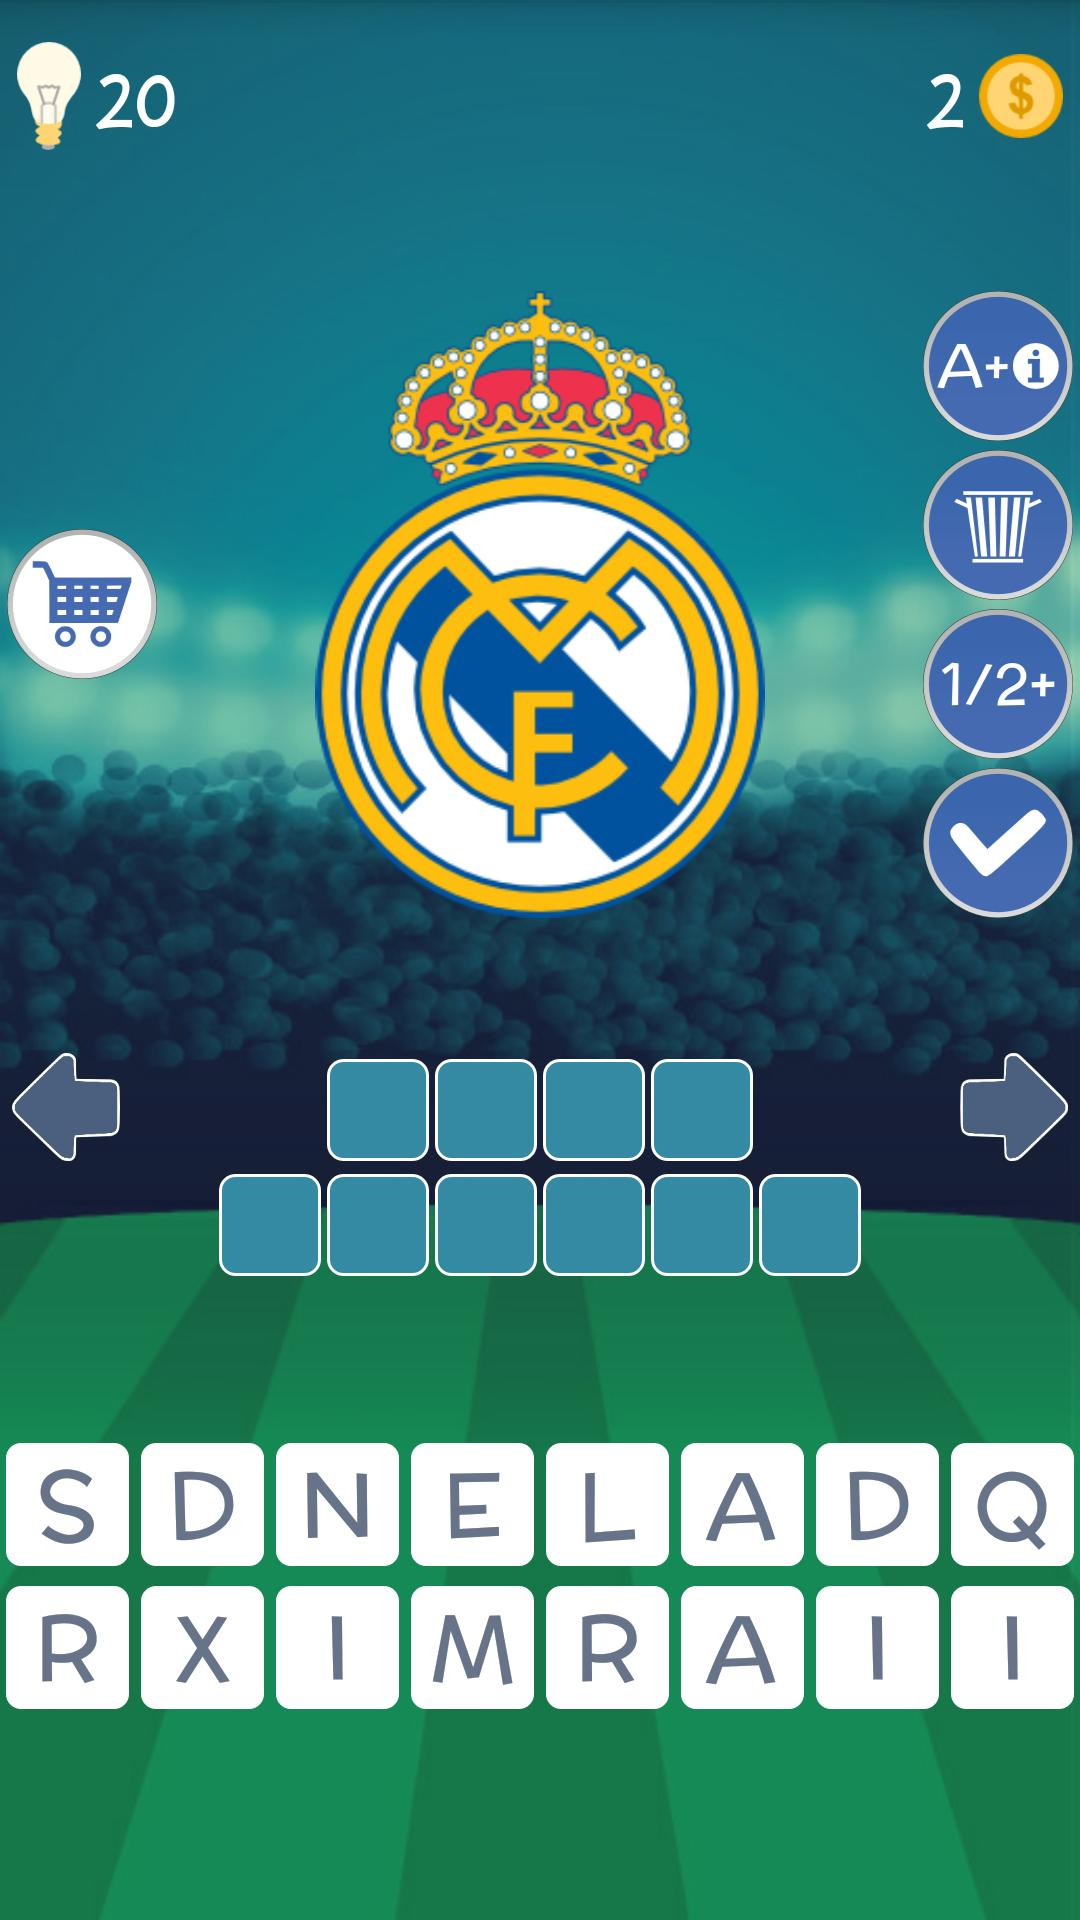 Soccer Clubs Logo Quiz for Android - APK Download